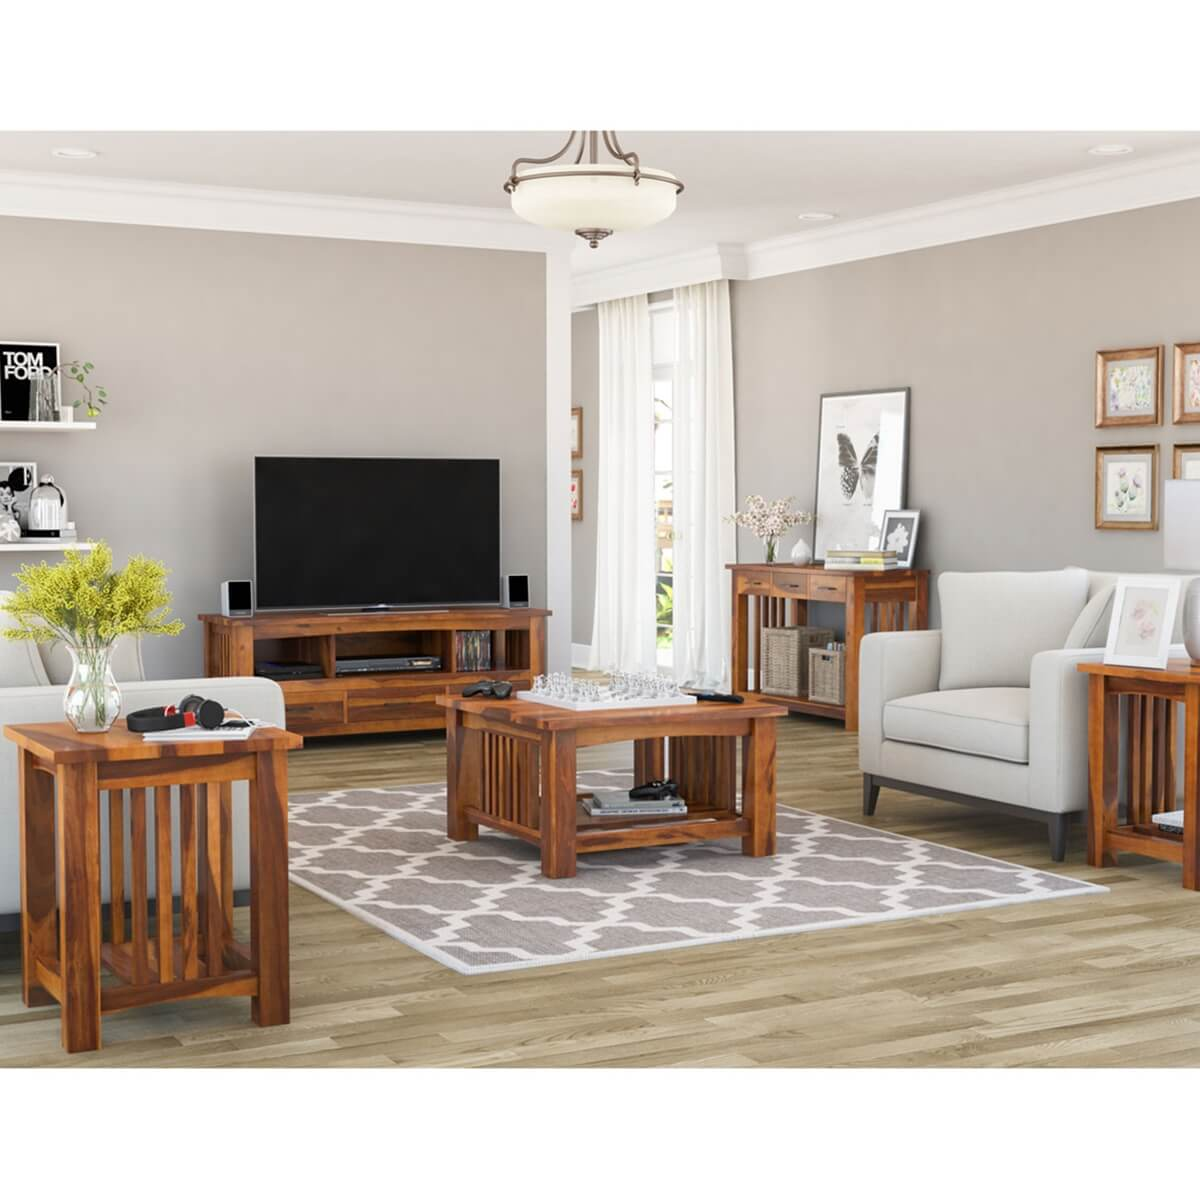 Jeddito Mission Rustic Solid Wood 5 Piece Living Room Set